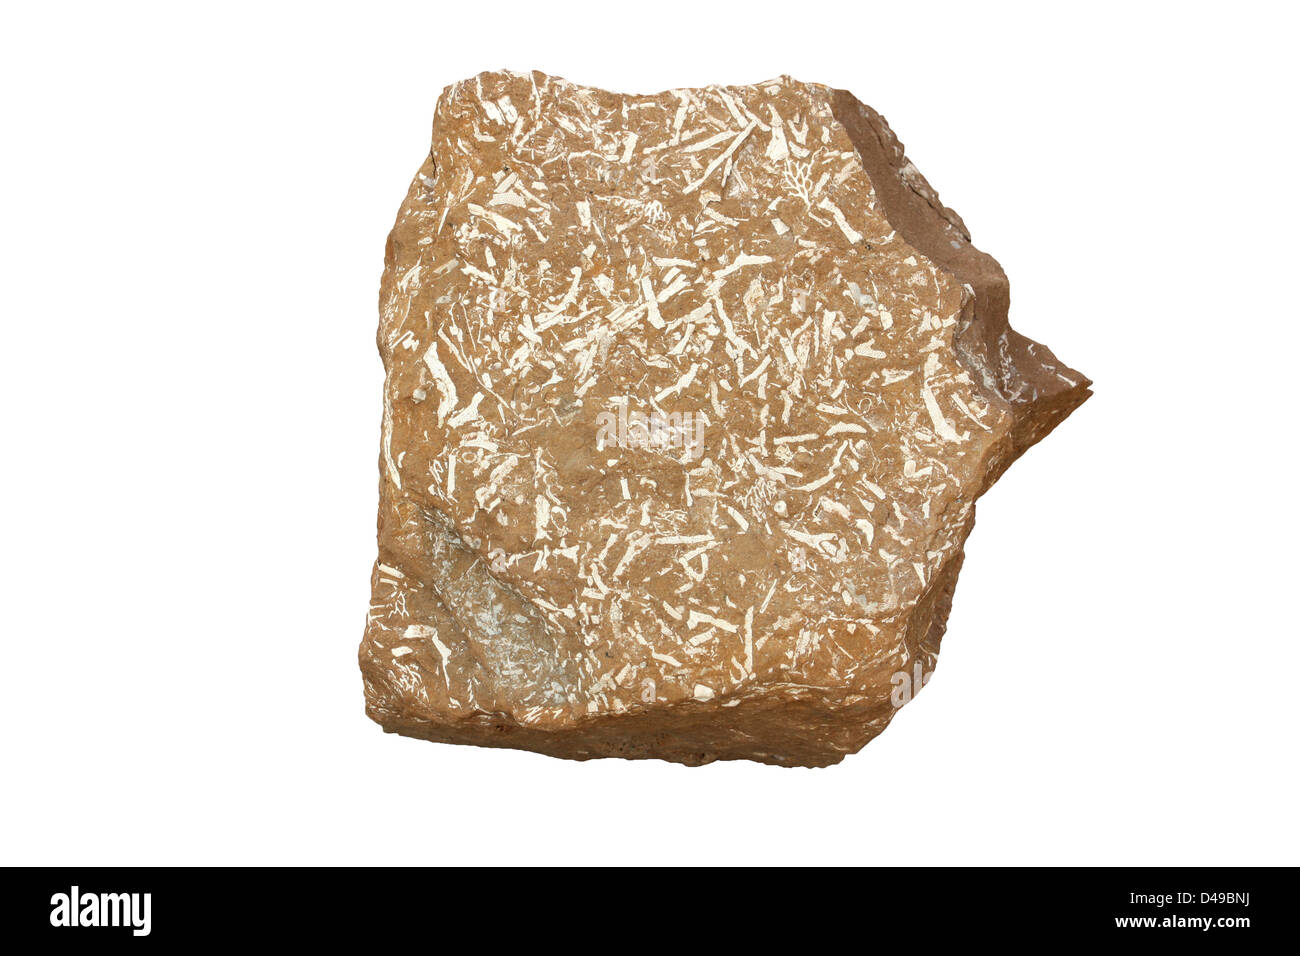 Oil shale - Stock Image